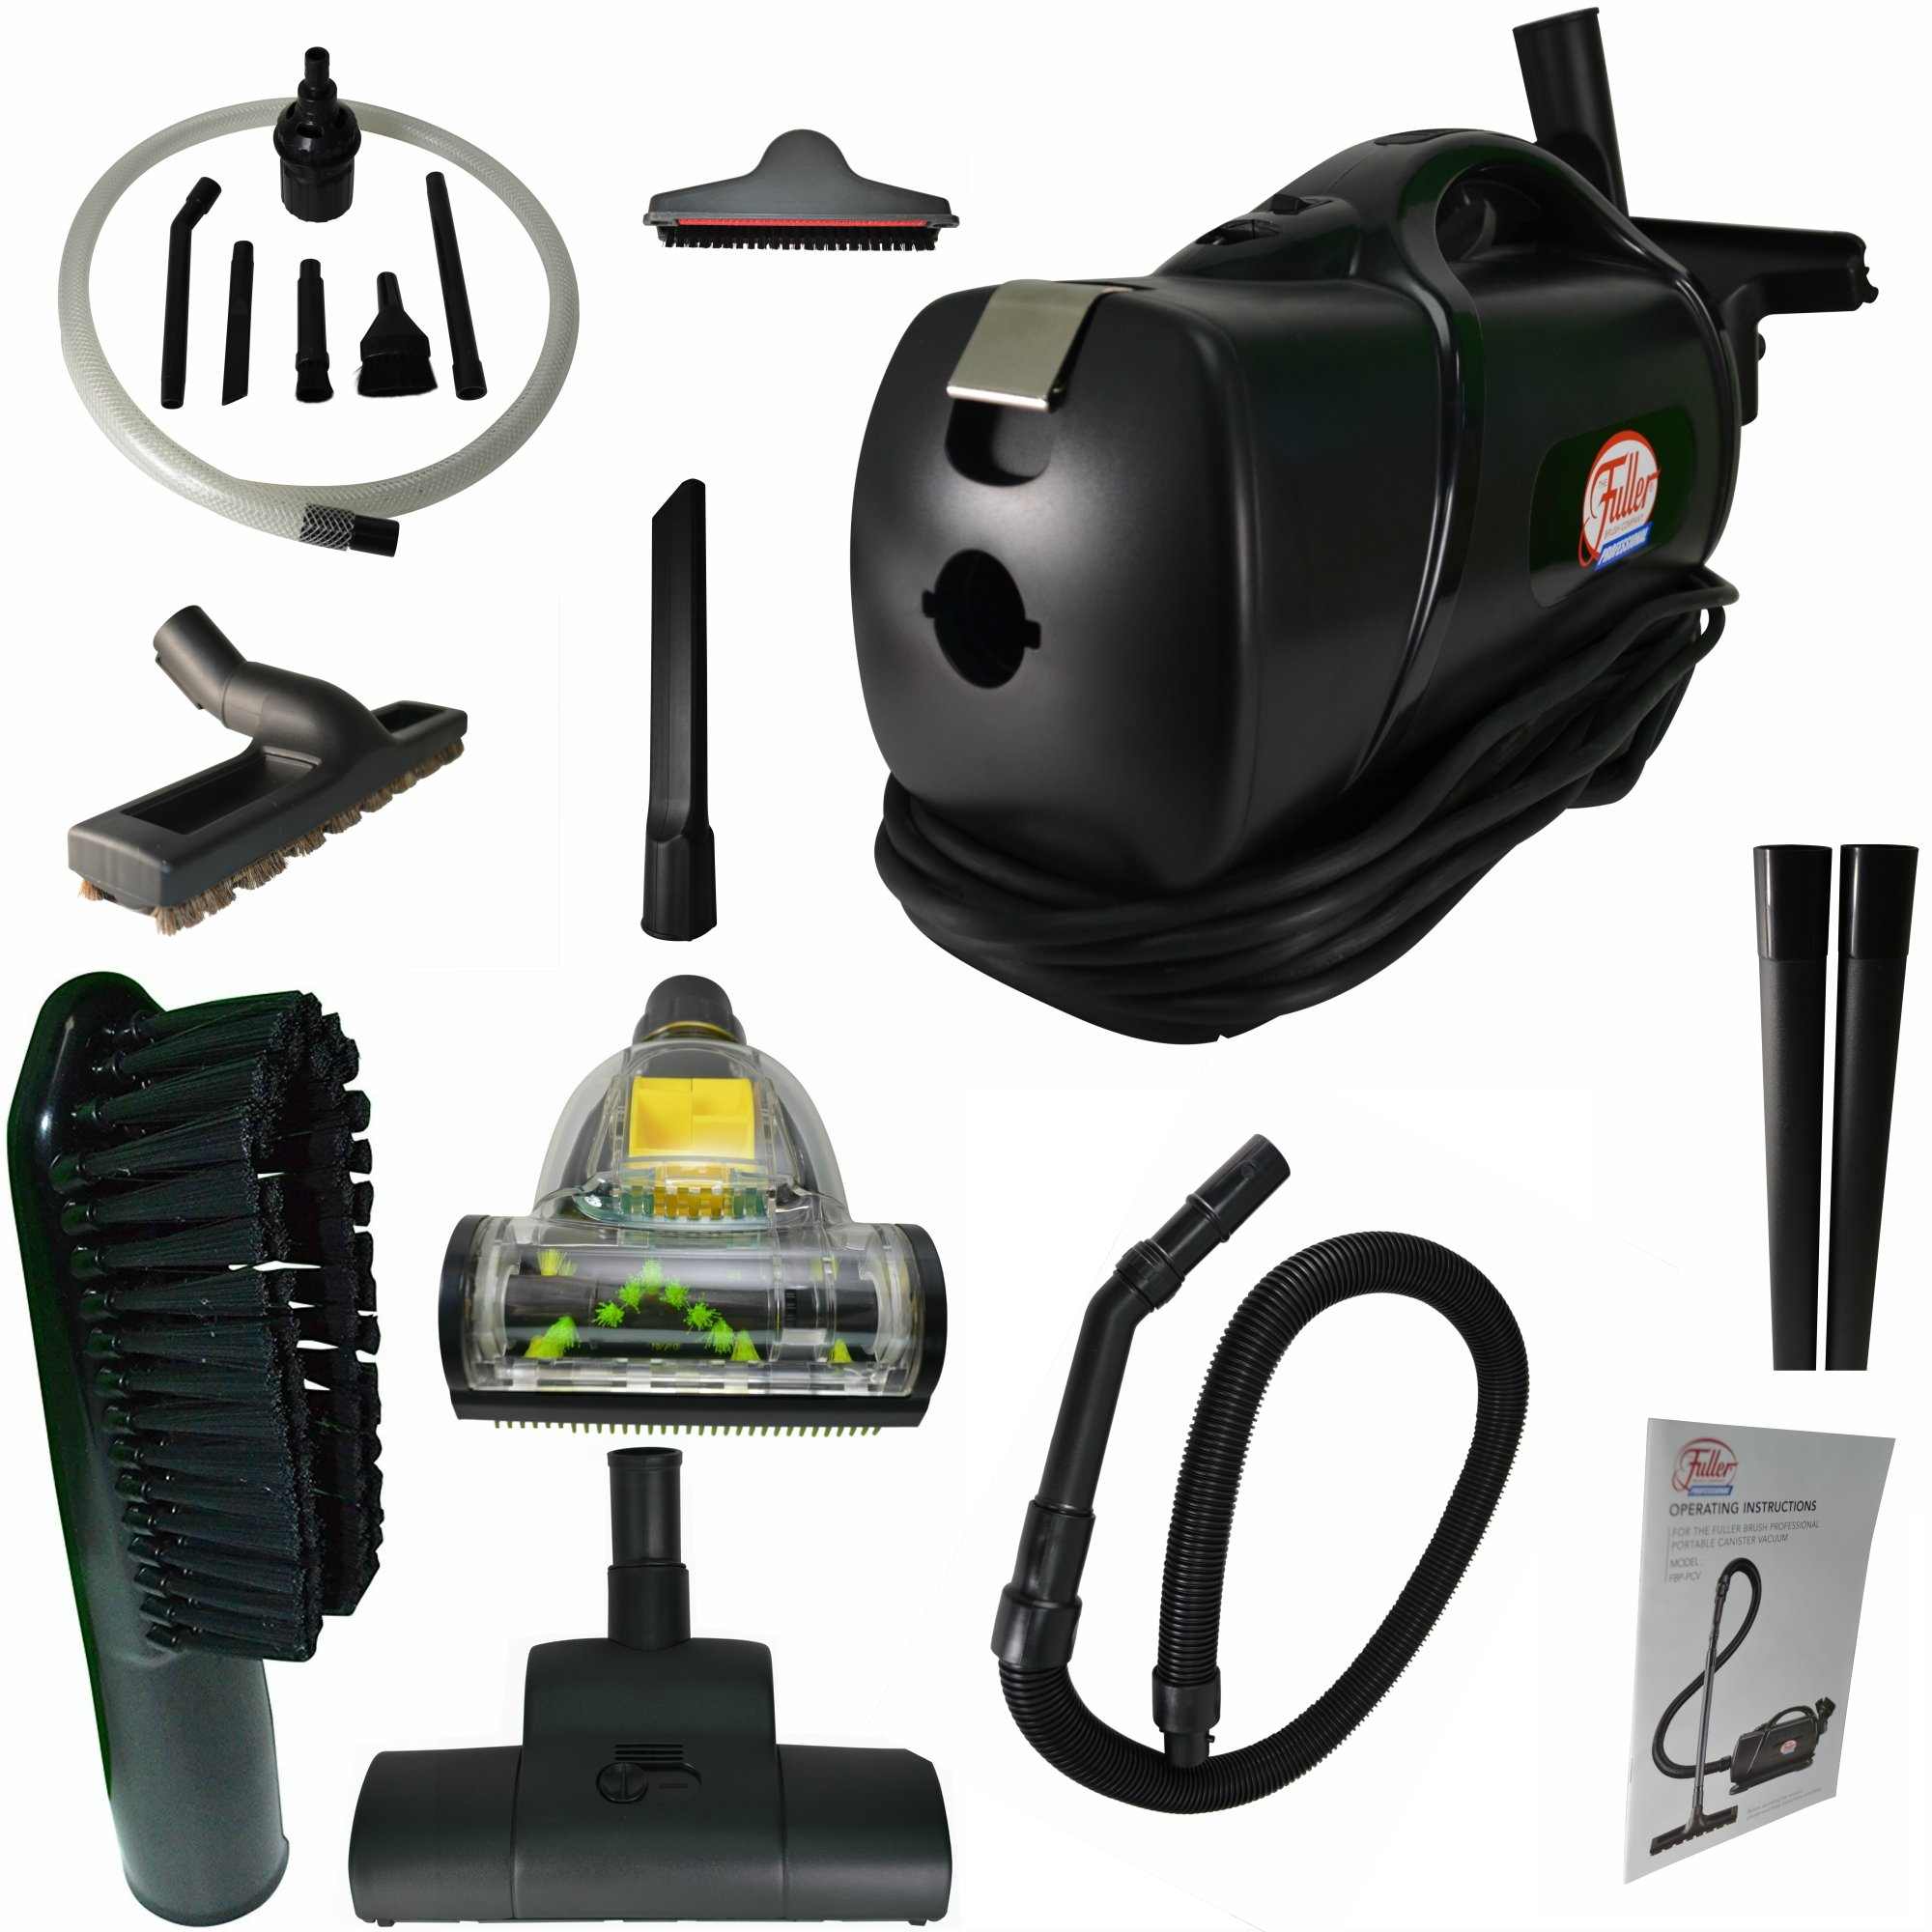 Portable Lightweight Commercial HandHeld Vacuum W/ Blower & HEPA Certified Vacuum Bags, Added Premium Attachments & Micro Attachment Kit. FBP-PCV Fuller Brush Quality Vacuum, Works Great for Pet Hair! by Fuller Brush